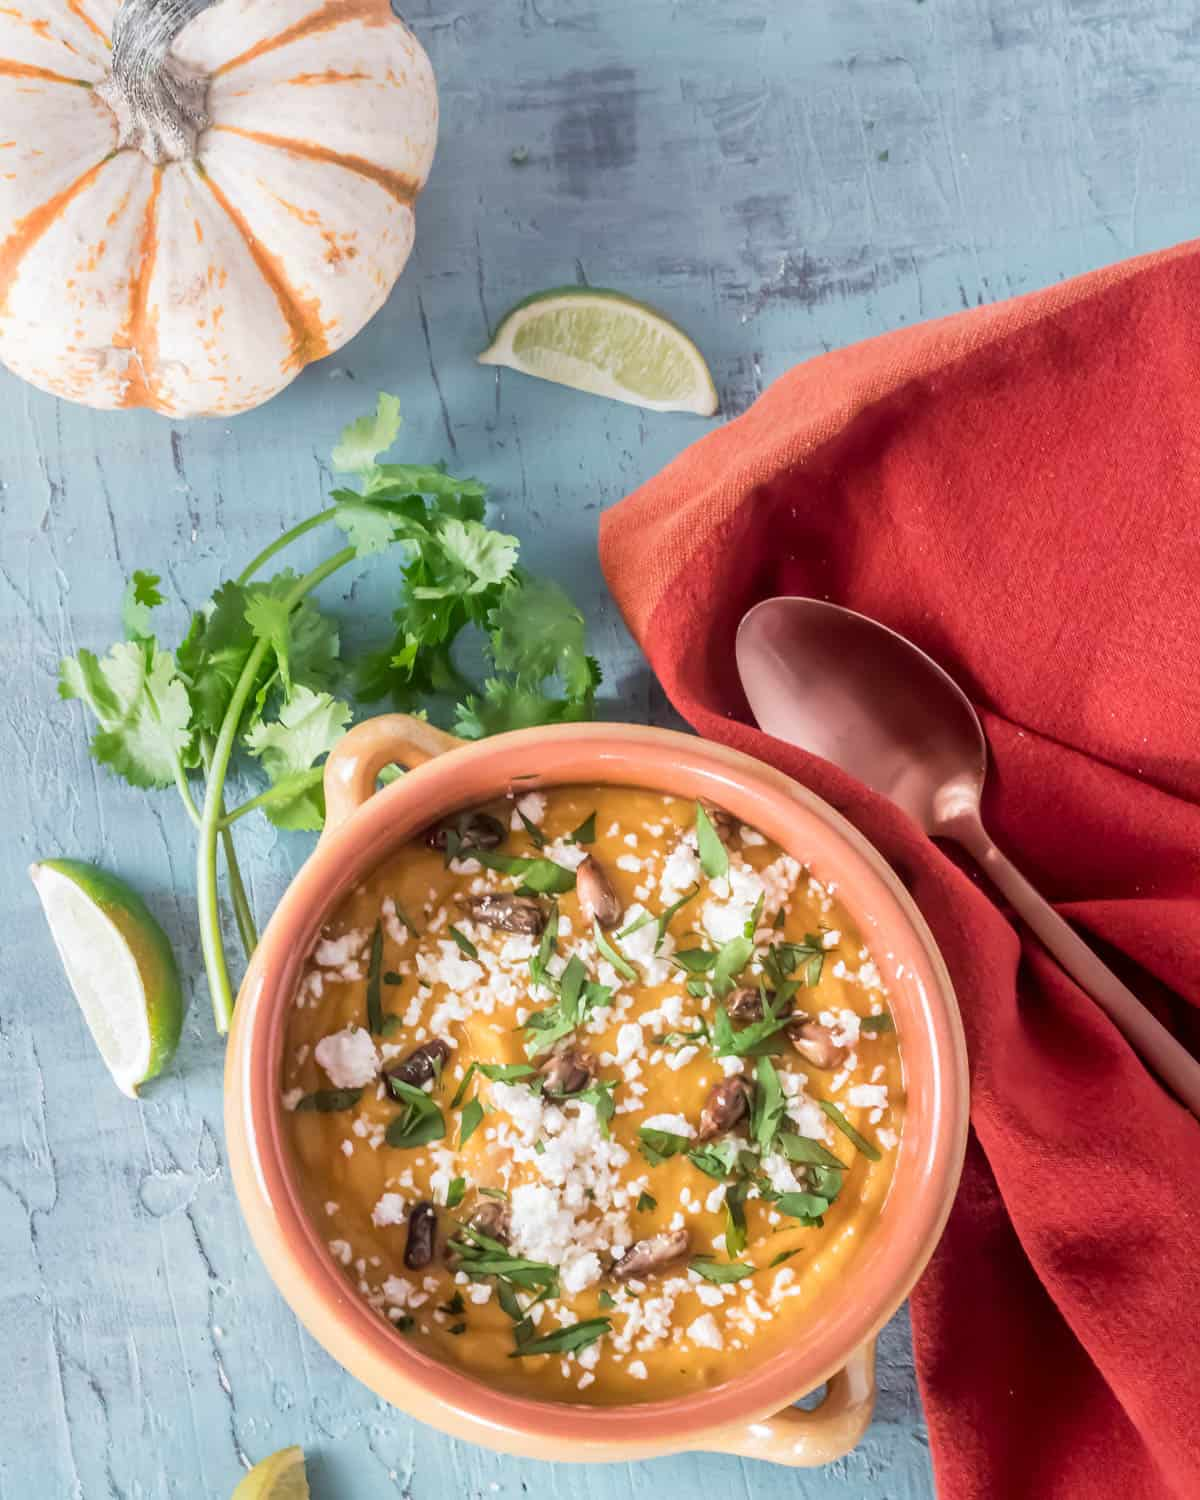 A creamy and savory soup with a hint of spice and sweetness, Peruvian Pumpkin Soup - Sopa de Calabaza makes a stunning first course (especially when served in a mini pumpkin bowl) or a comforting light supper on a chilly fall evening! Isn't it time to expand your use of pumpkins beyond jack o'lanterns and pies? #pumpkinsouprecipe #Peruvianpumpkinsoup